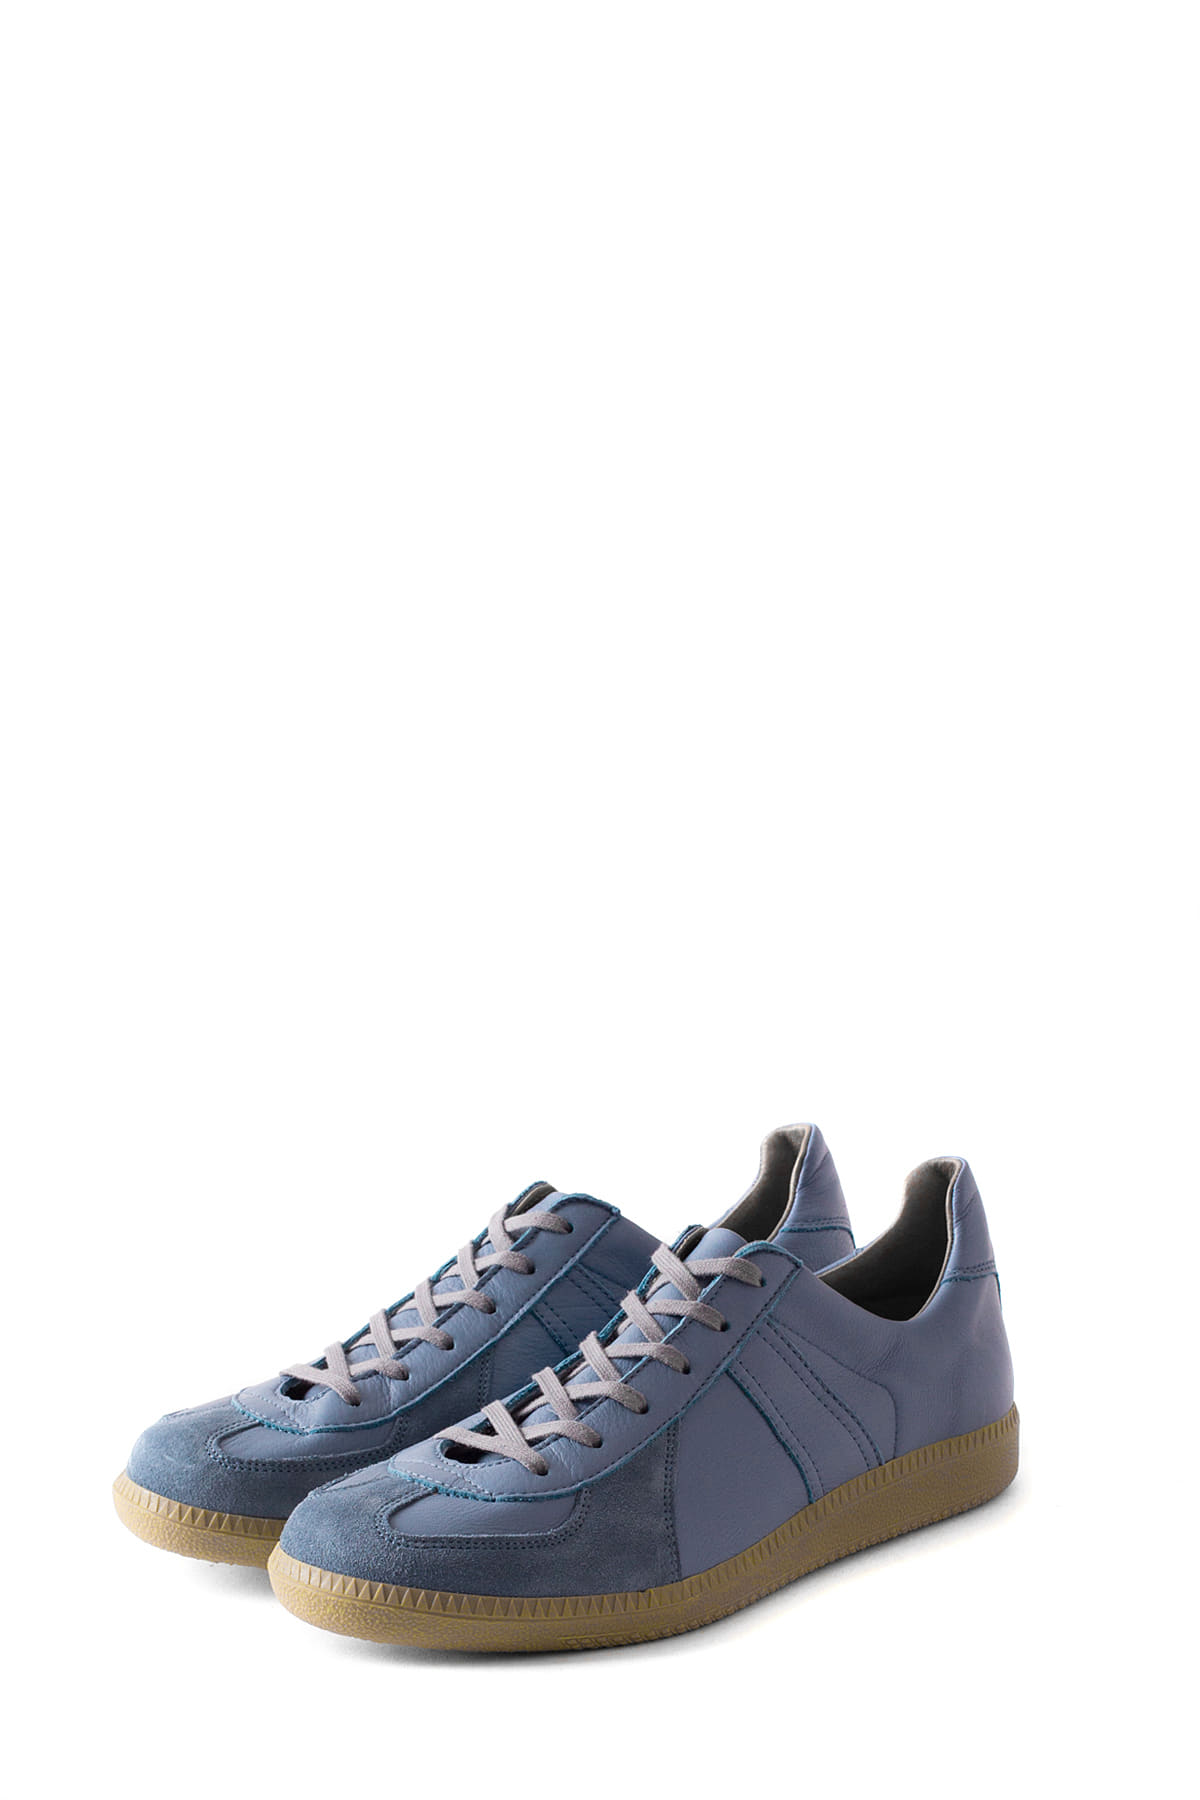 REPRODUCTION OF FOUND : German Military Trainer (Blue Grey)